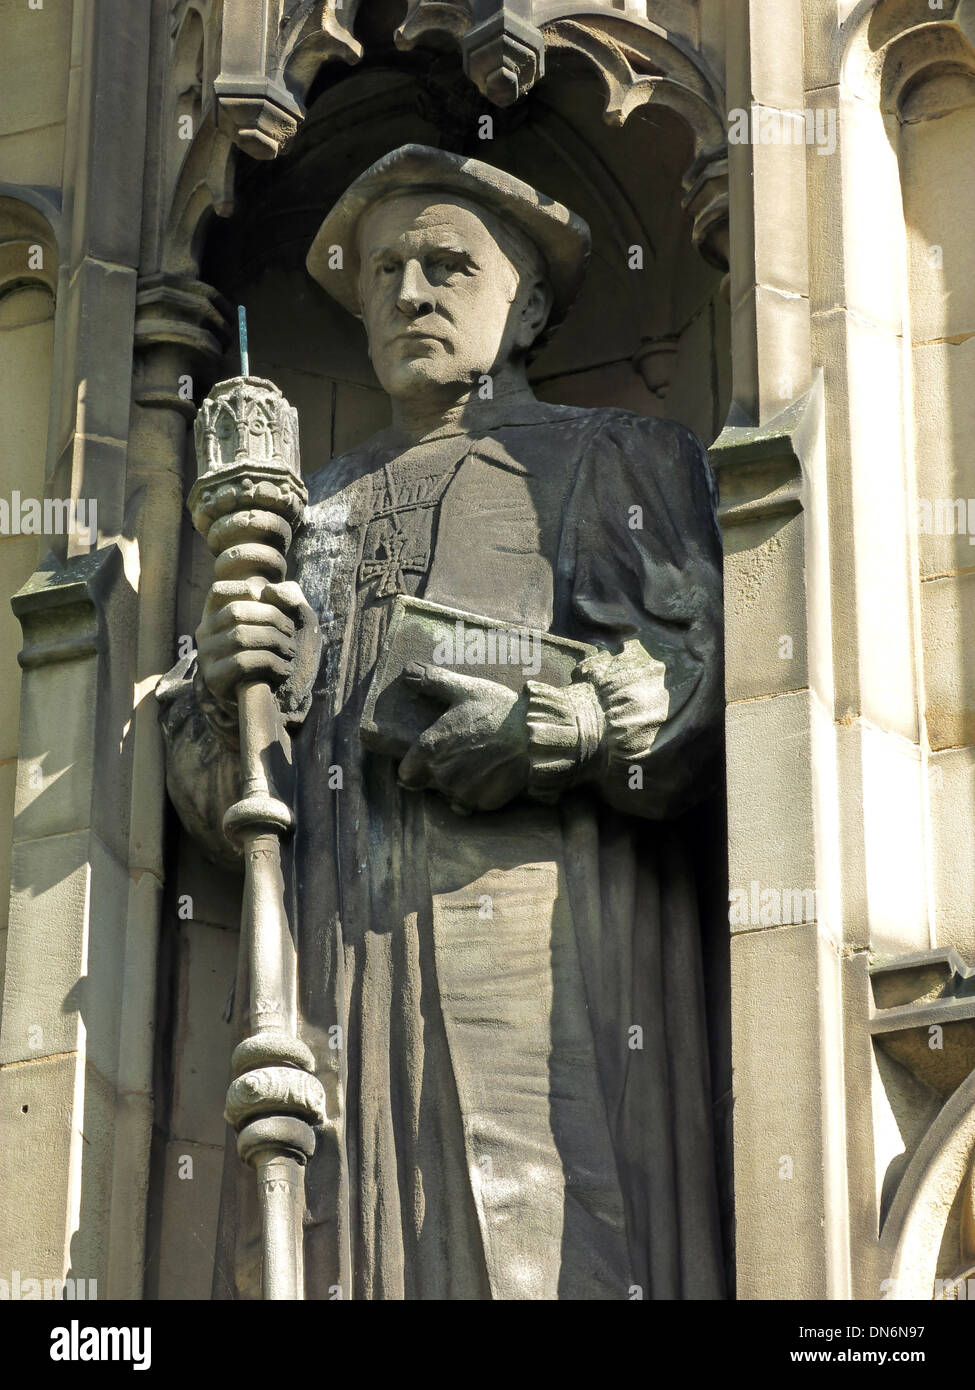 James Moorhouse Statue Manchester Cathedral England UK - Stock Image